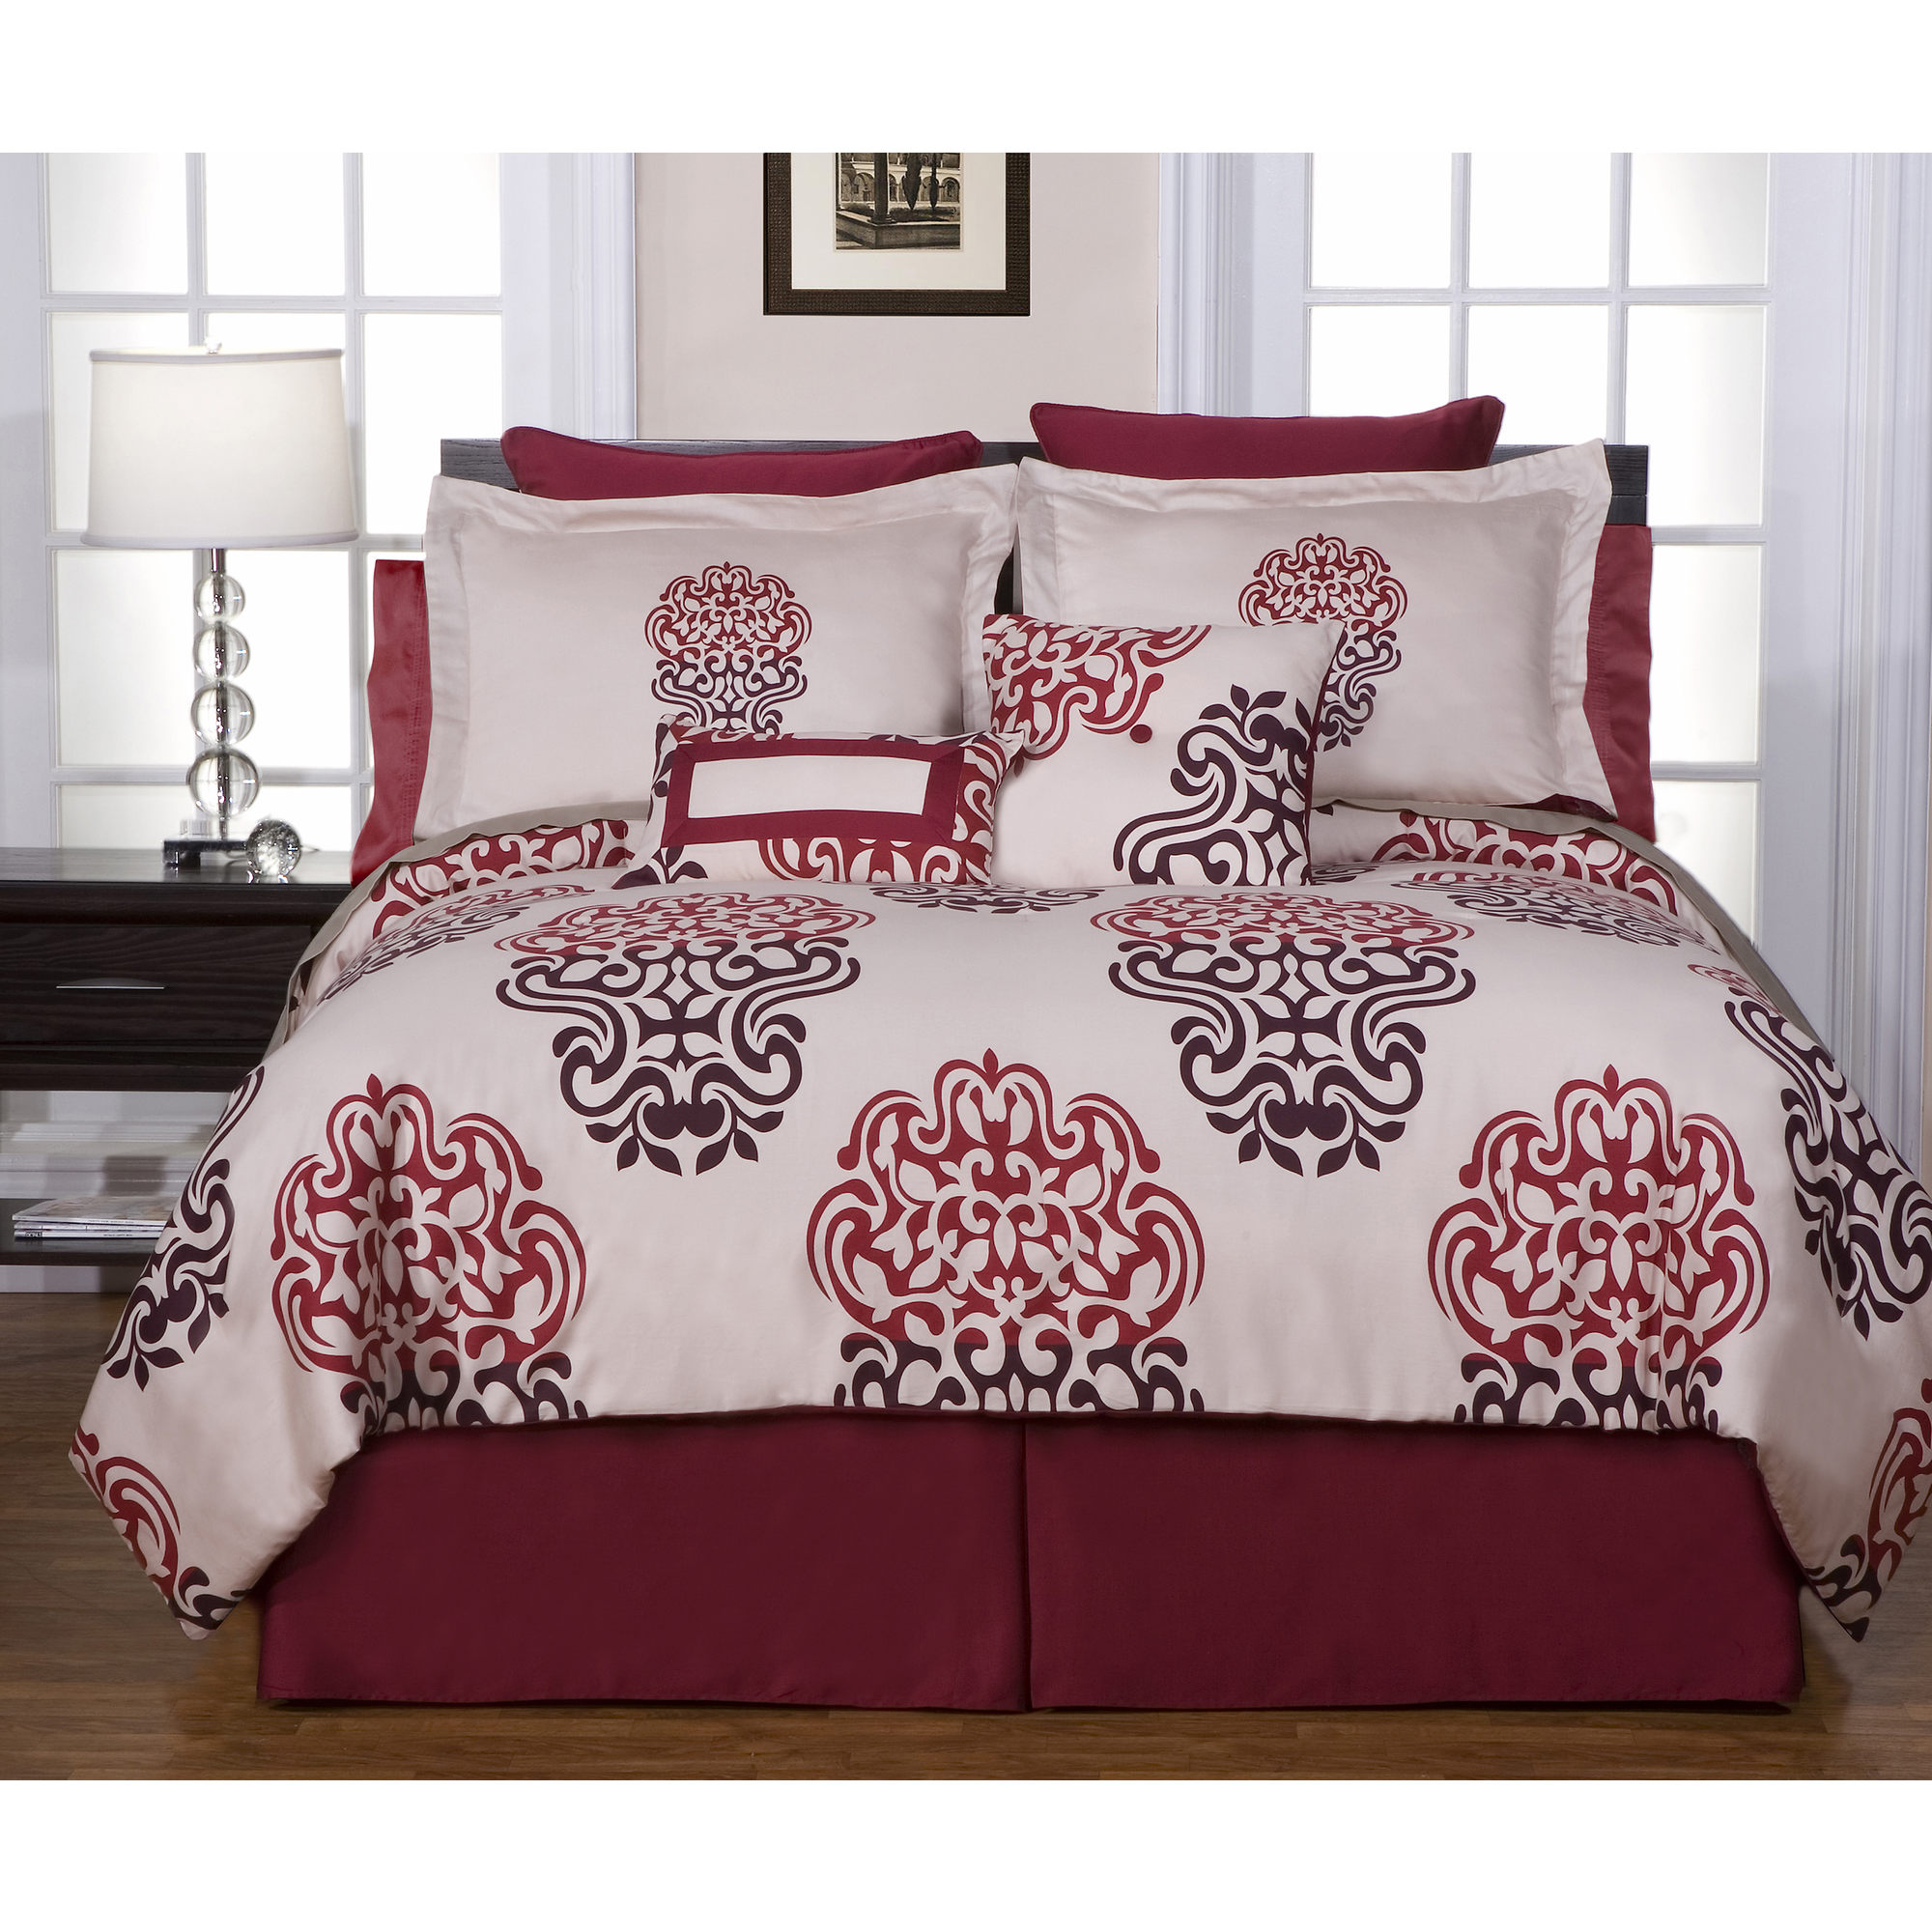 Outstanding california king bedding for bedroom design with california king bed frame